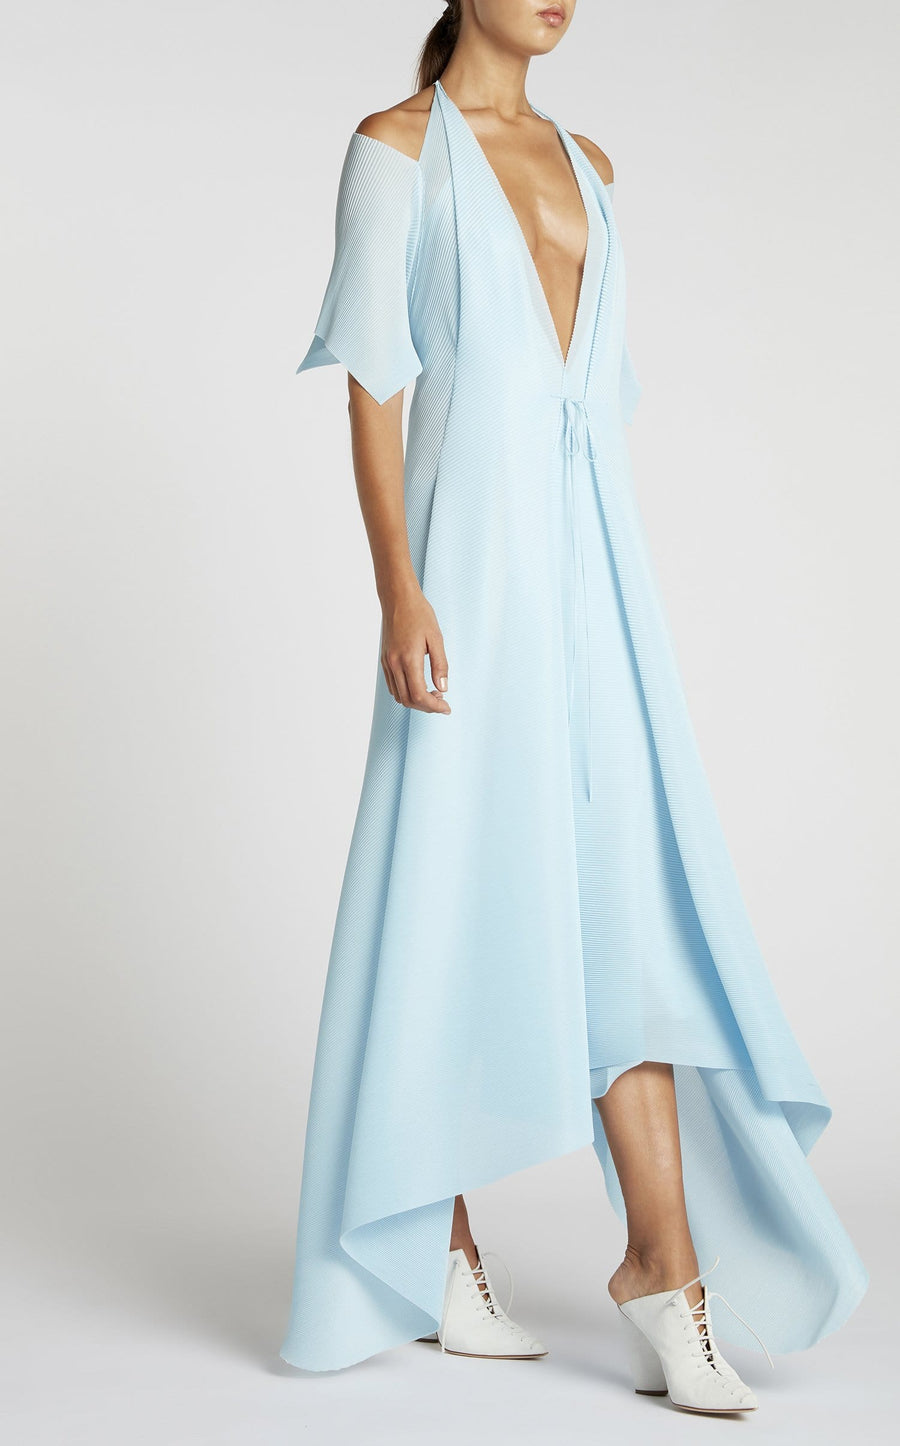 Ballard Dress In Ice Blue from Roland Mouret